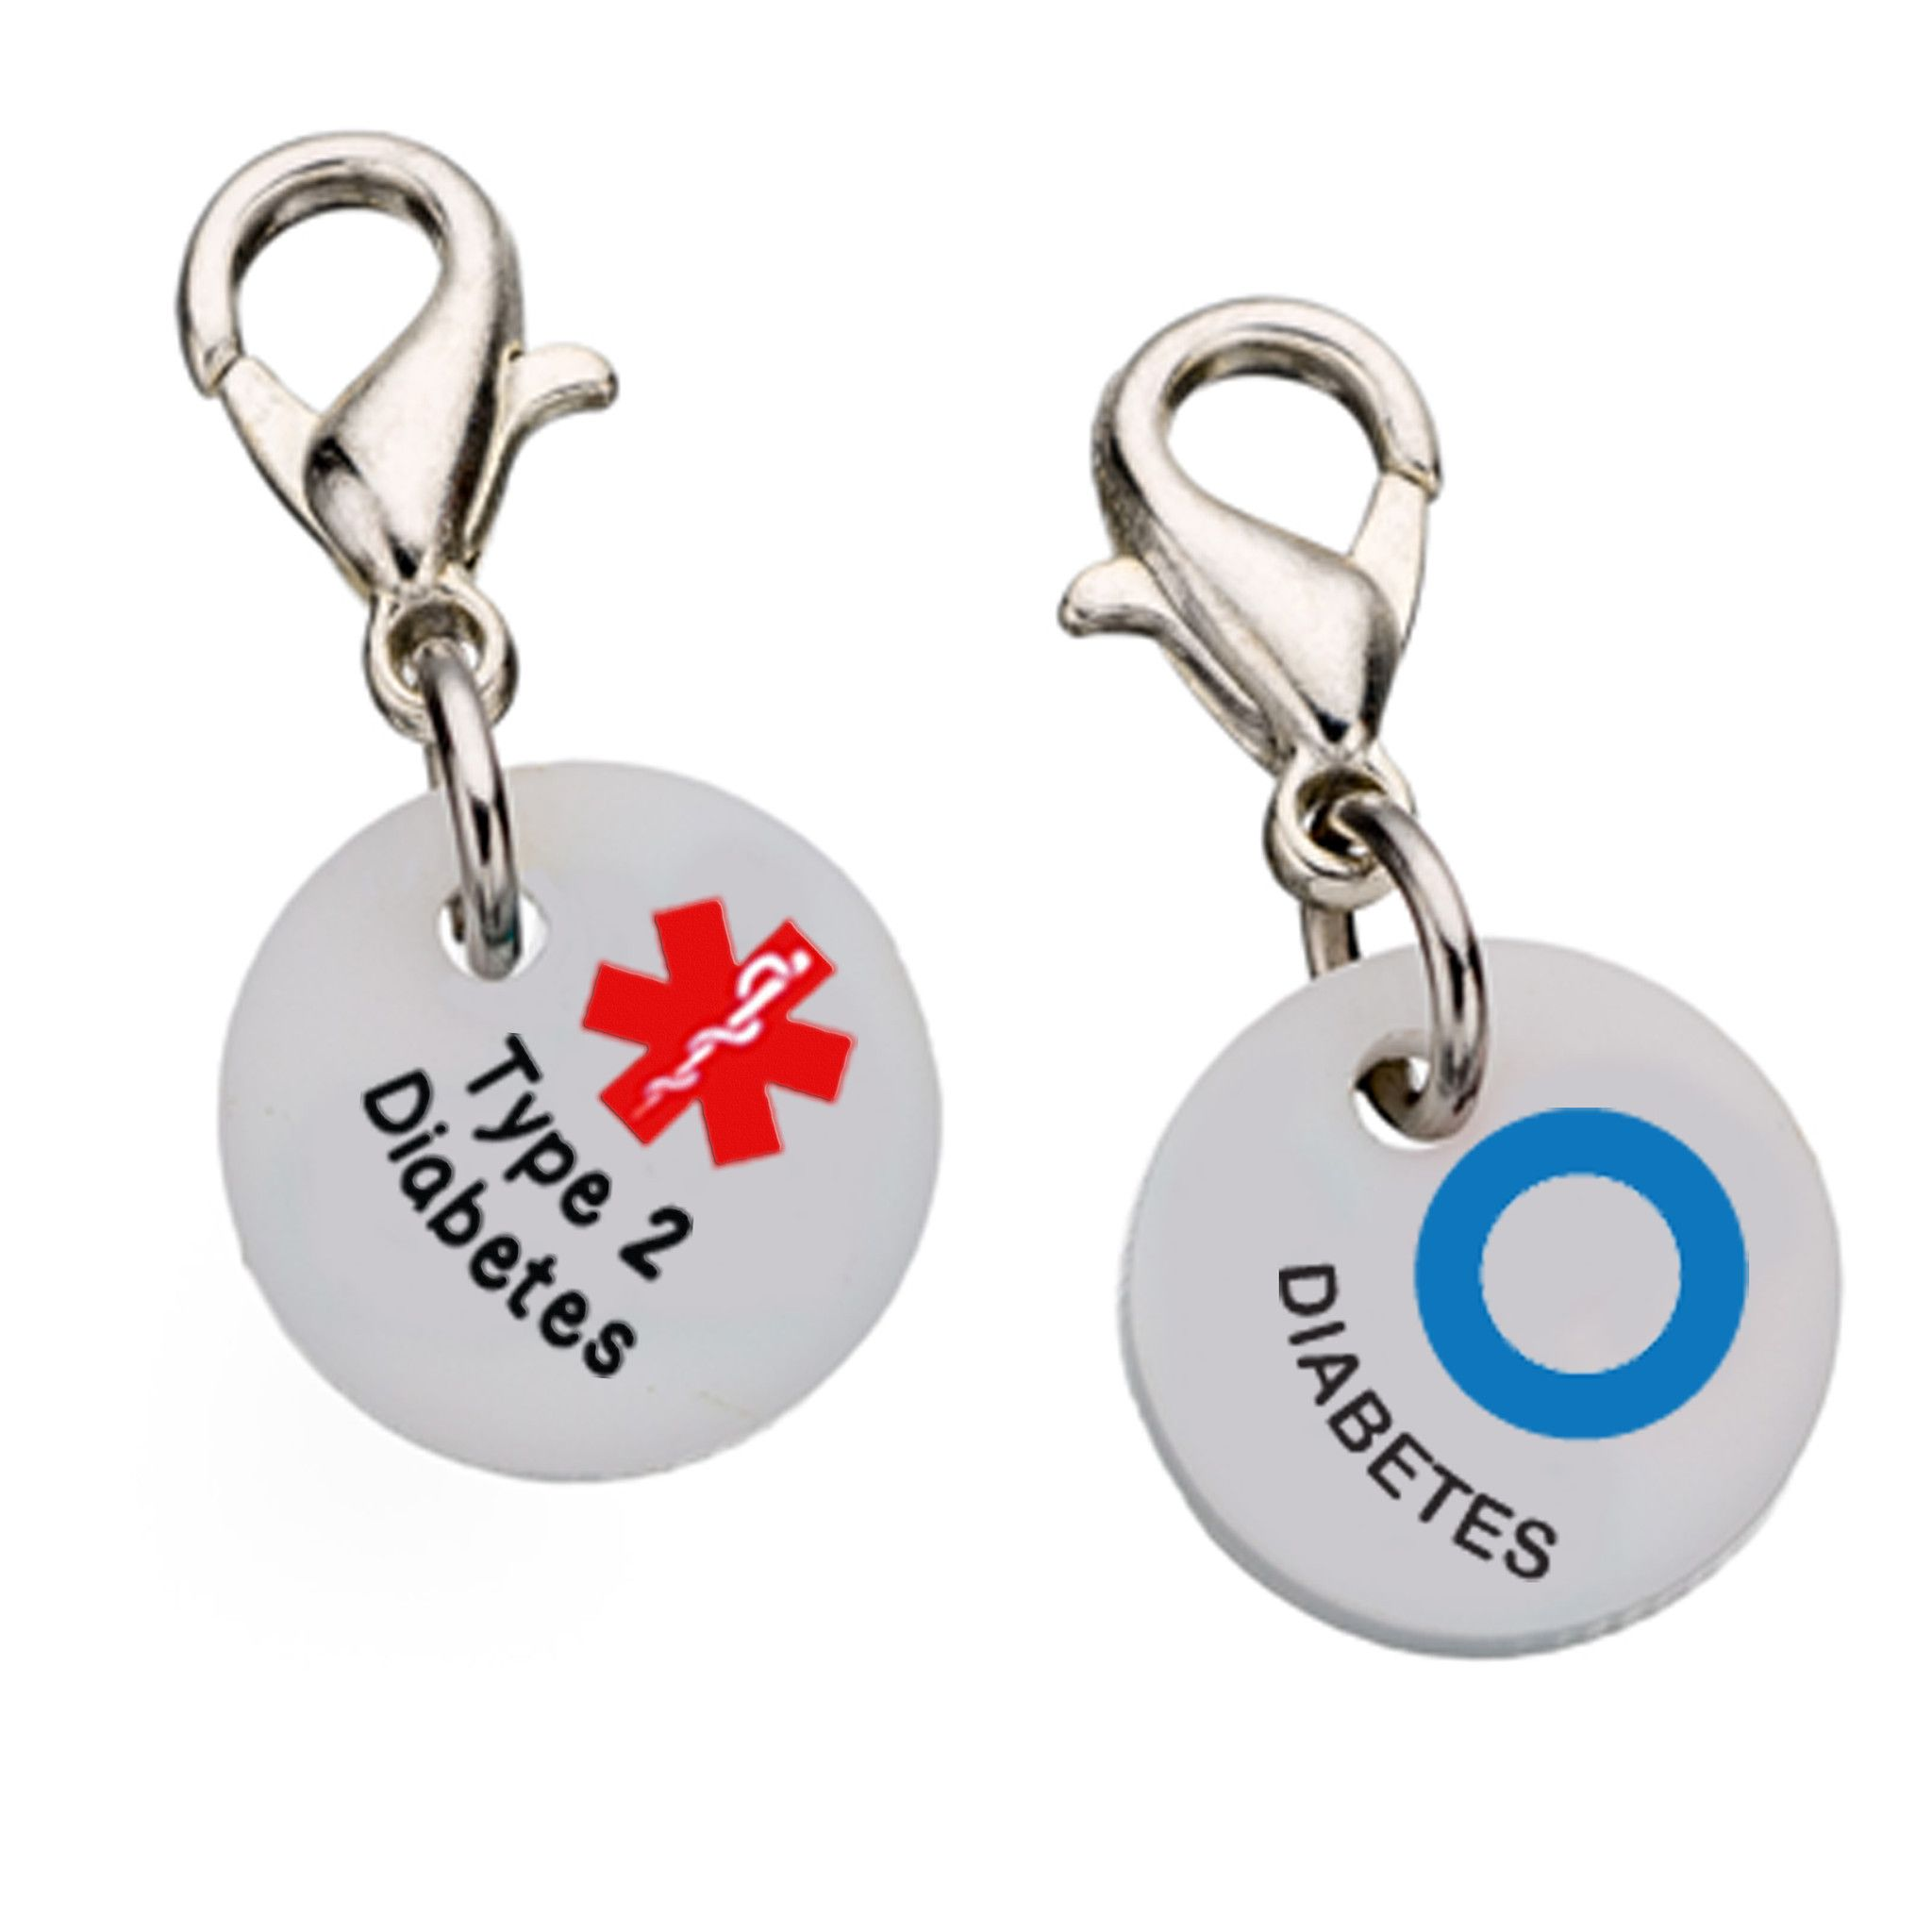 Diabetes Type 2 with Blue Circle Charm - Medium Partial Proceeds Benefit Diabetes Alert Dog Alliance